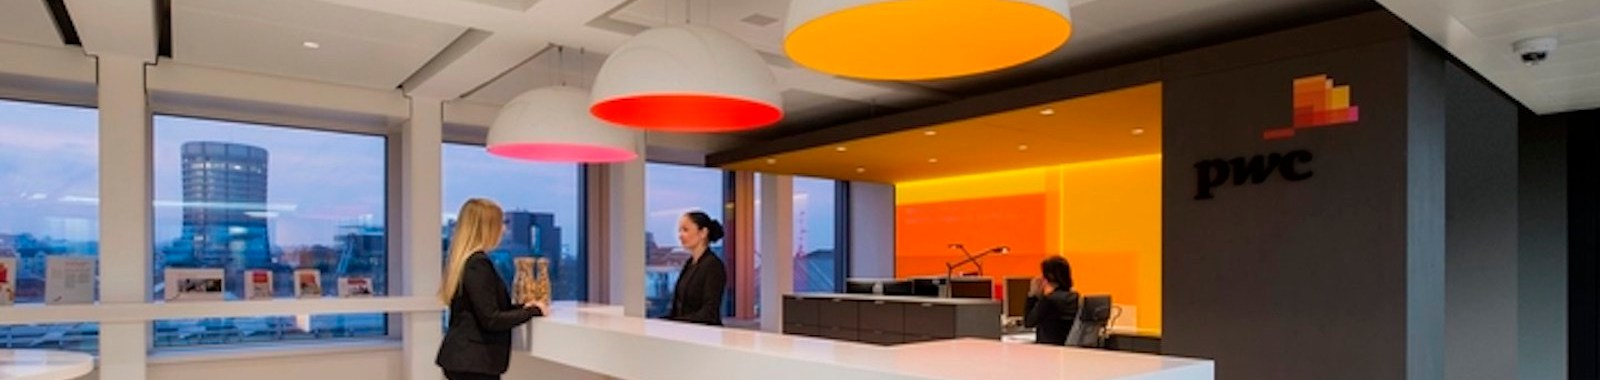 PwC-offices-eye